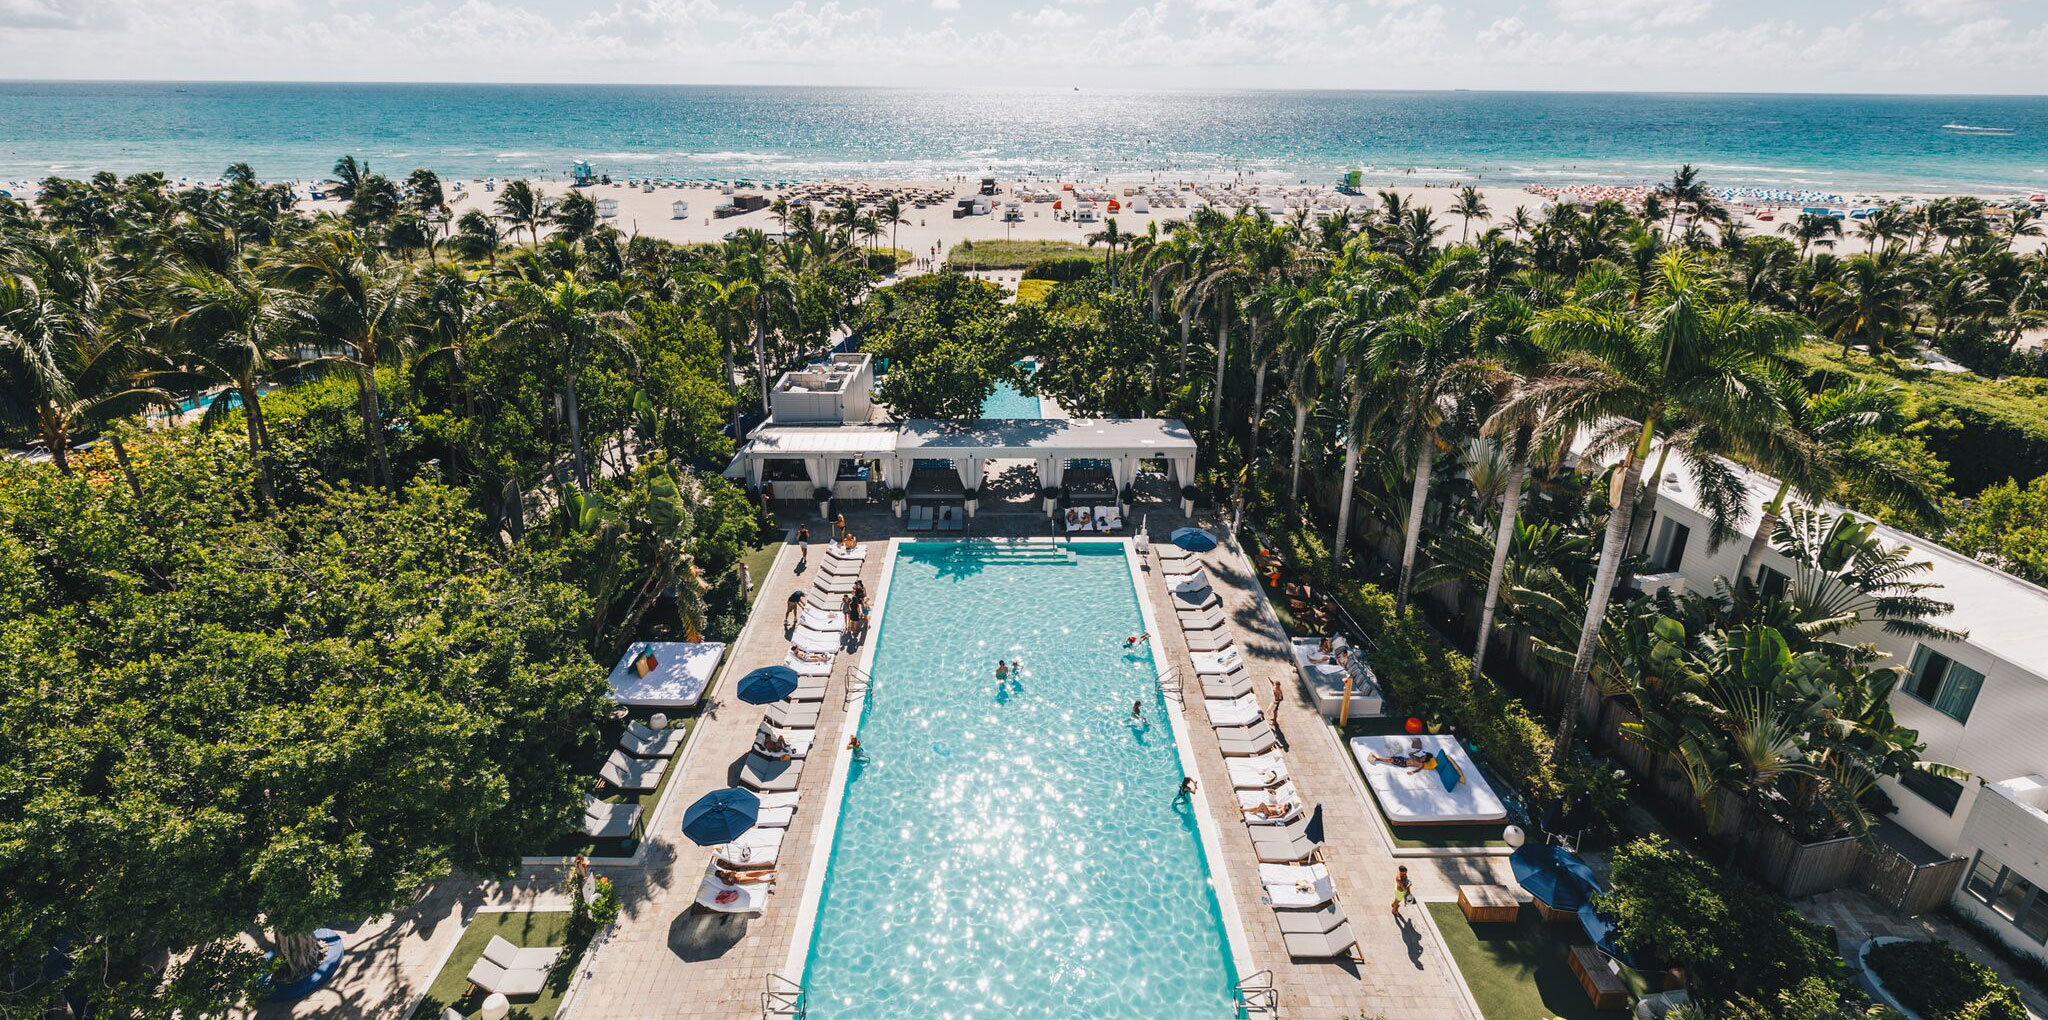 Shore Club Image